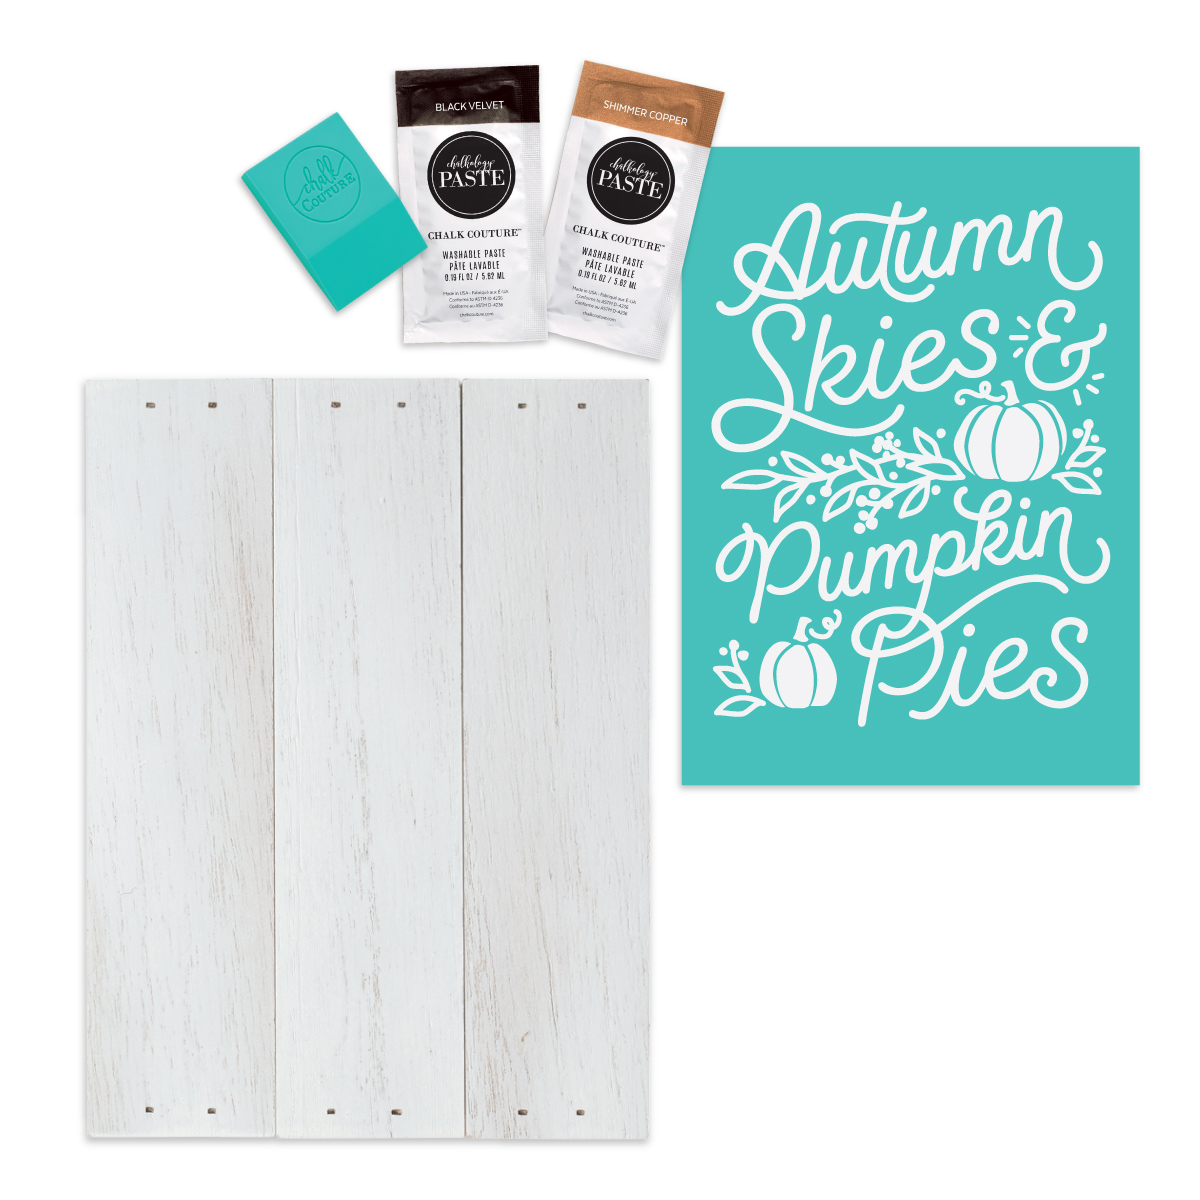 Autumn Skies Products